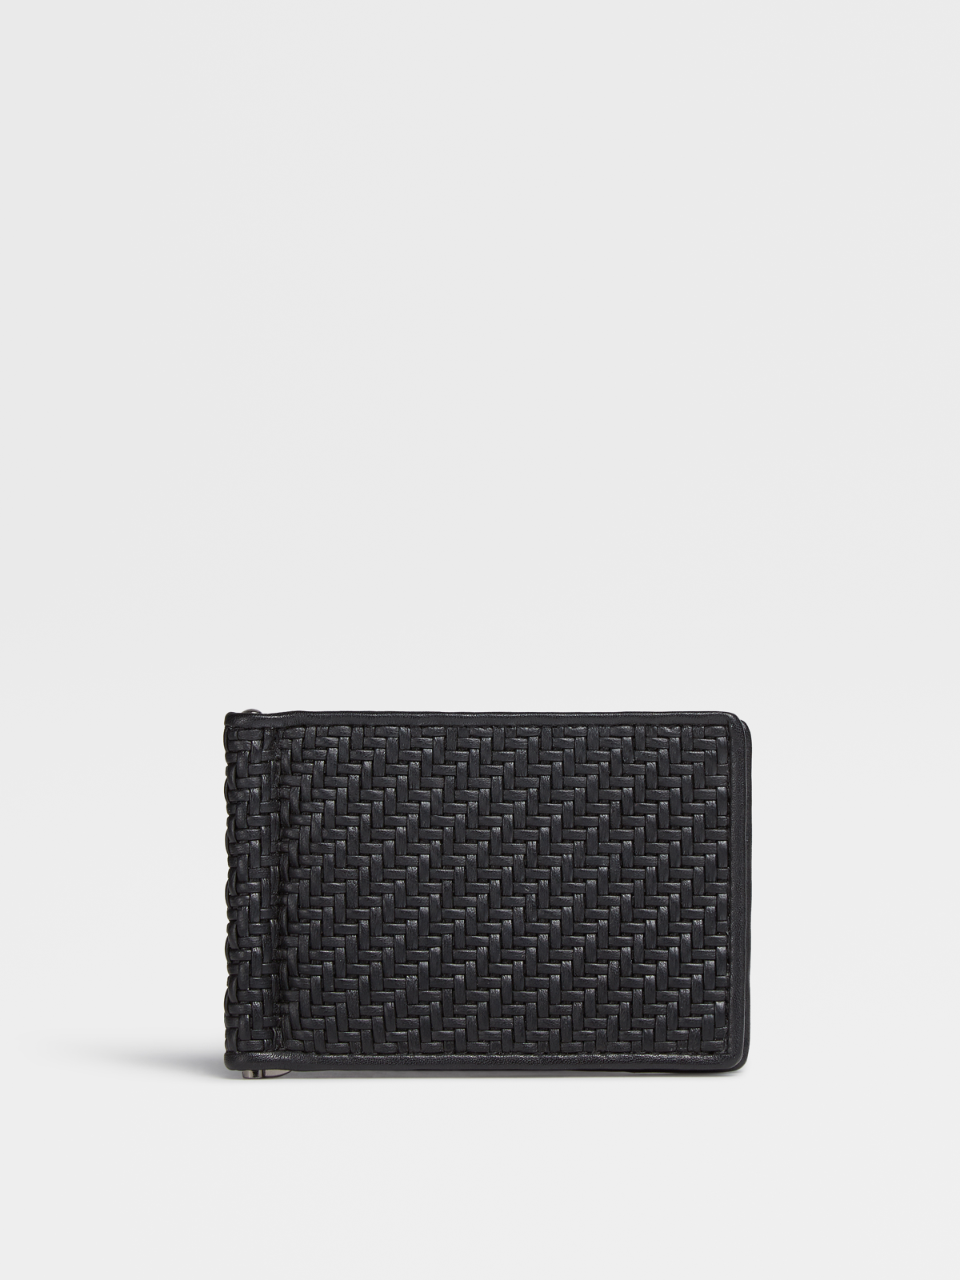 PELLETESSUTA™ Billfold Wallet